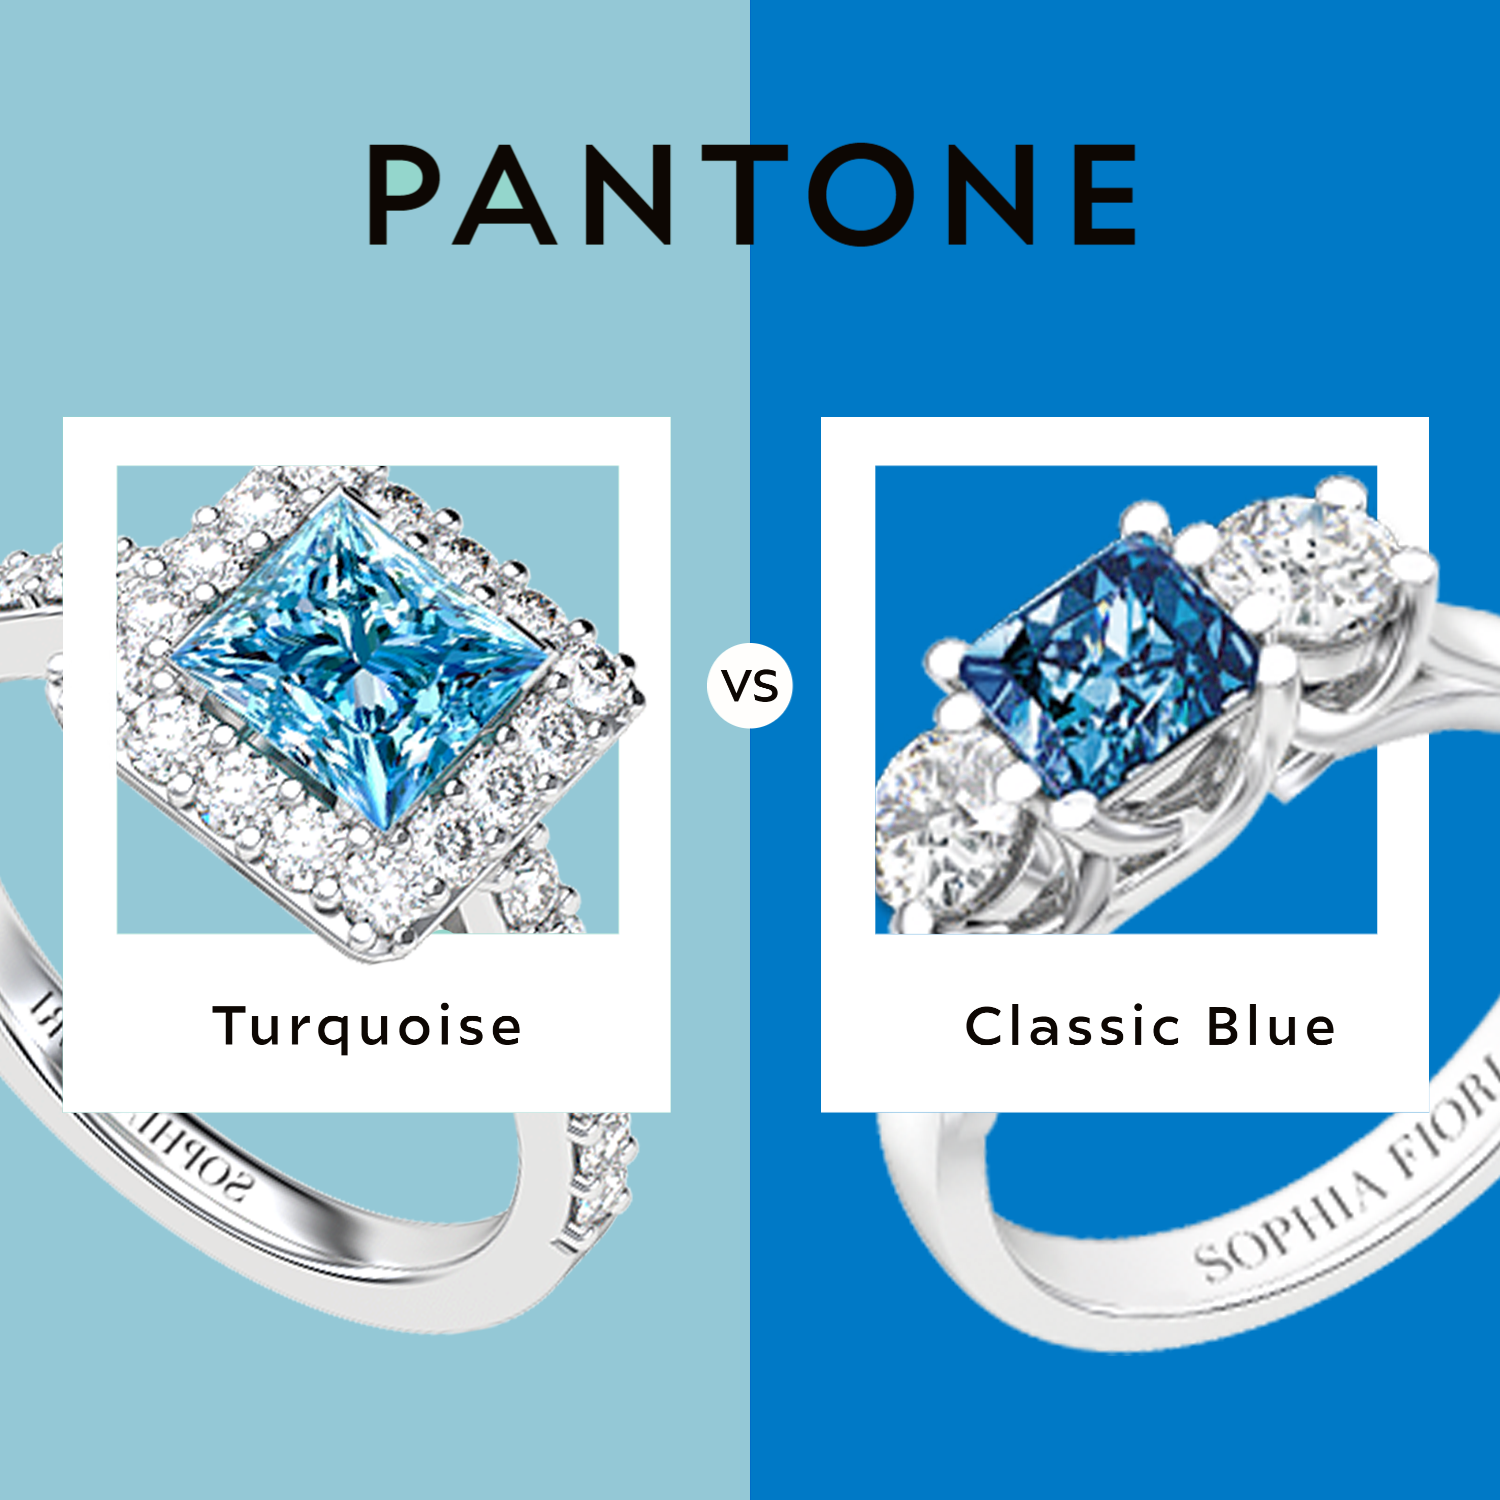 One question we get often is why blue diamonds have different hues, and the truth is.. there aren't two diamonds alike in the world! Although the formation process for all diamonds is similar, it's never identical for 2 diamonds, and the difference is even more notable for colored diamonds #MadeintheUSA #FamilyBusiness #Bridal #Jewelrydesign #uniquerings #FineJewelry #custommadejewellery